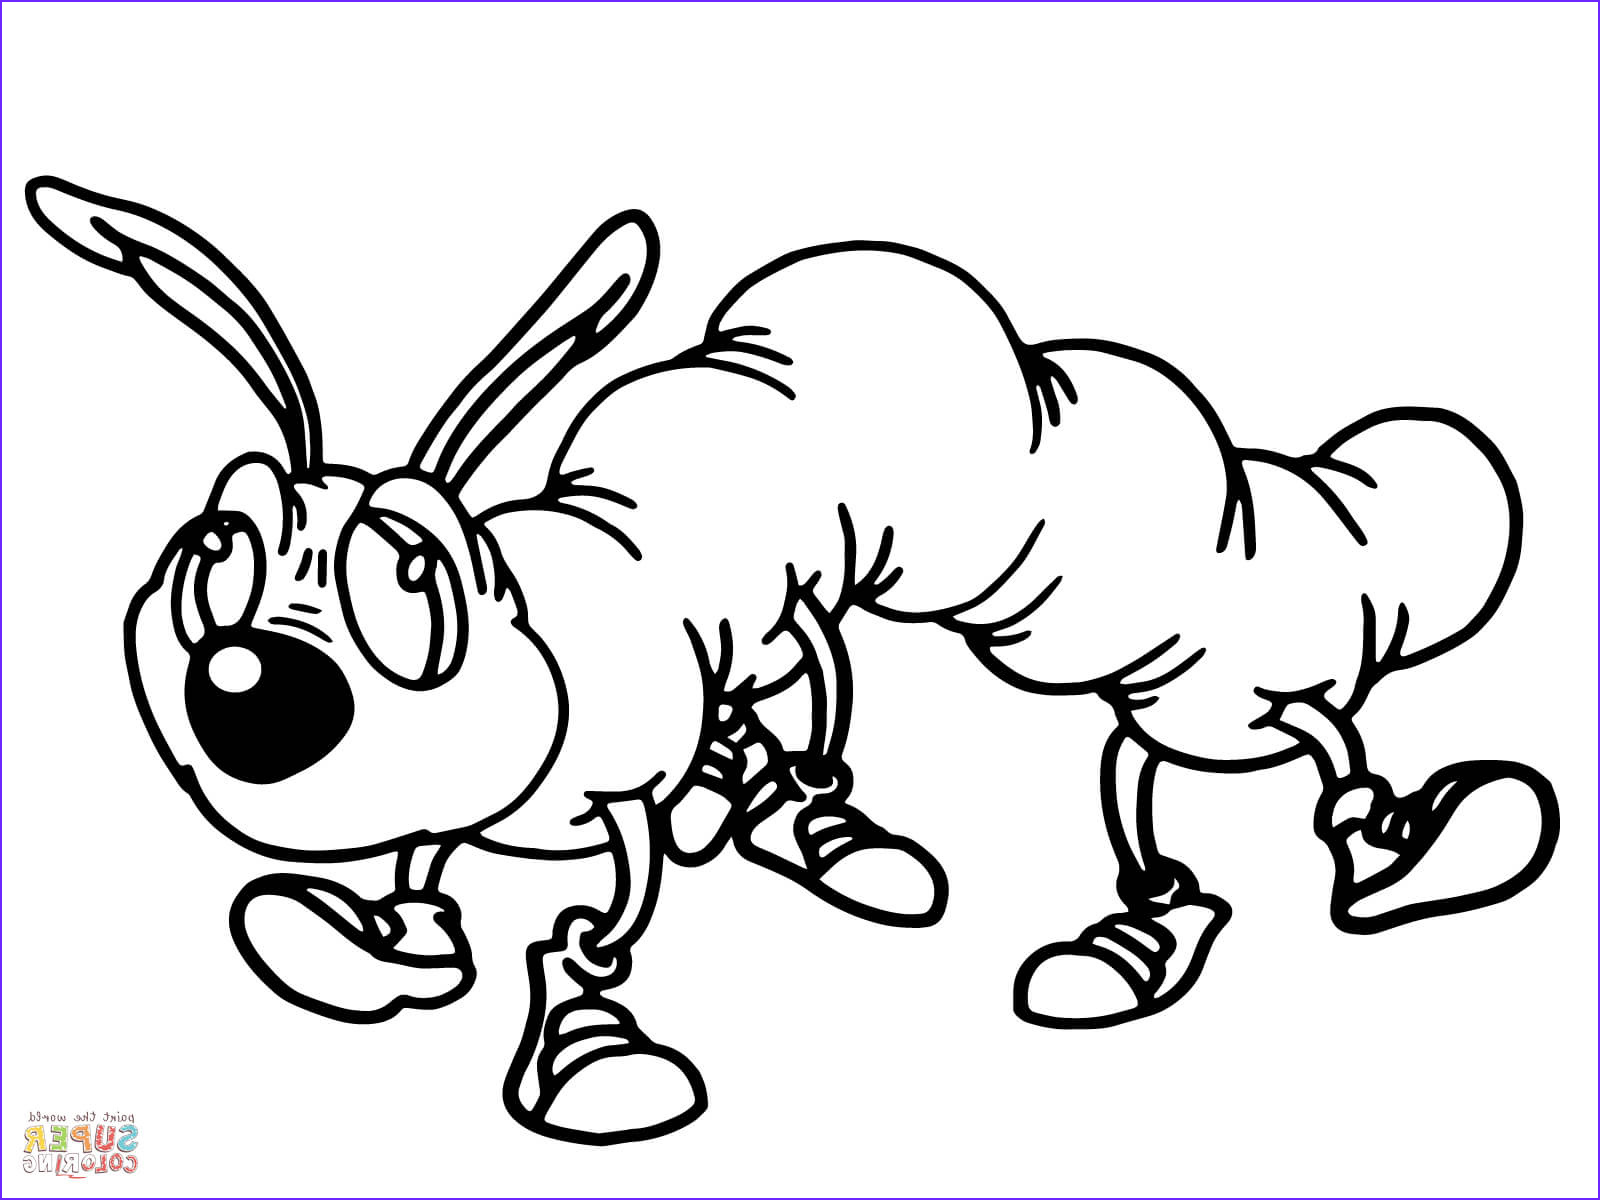 Very Hungry Caterpillar Coloring Page Best Of Image Simple Caterpillar Drawing at Getdrawings